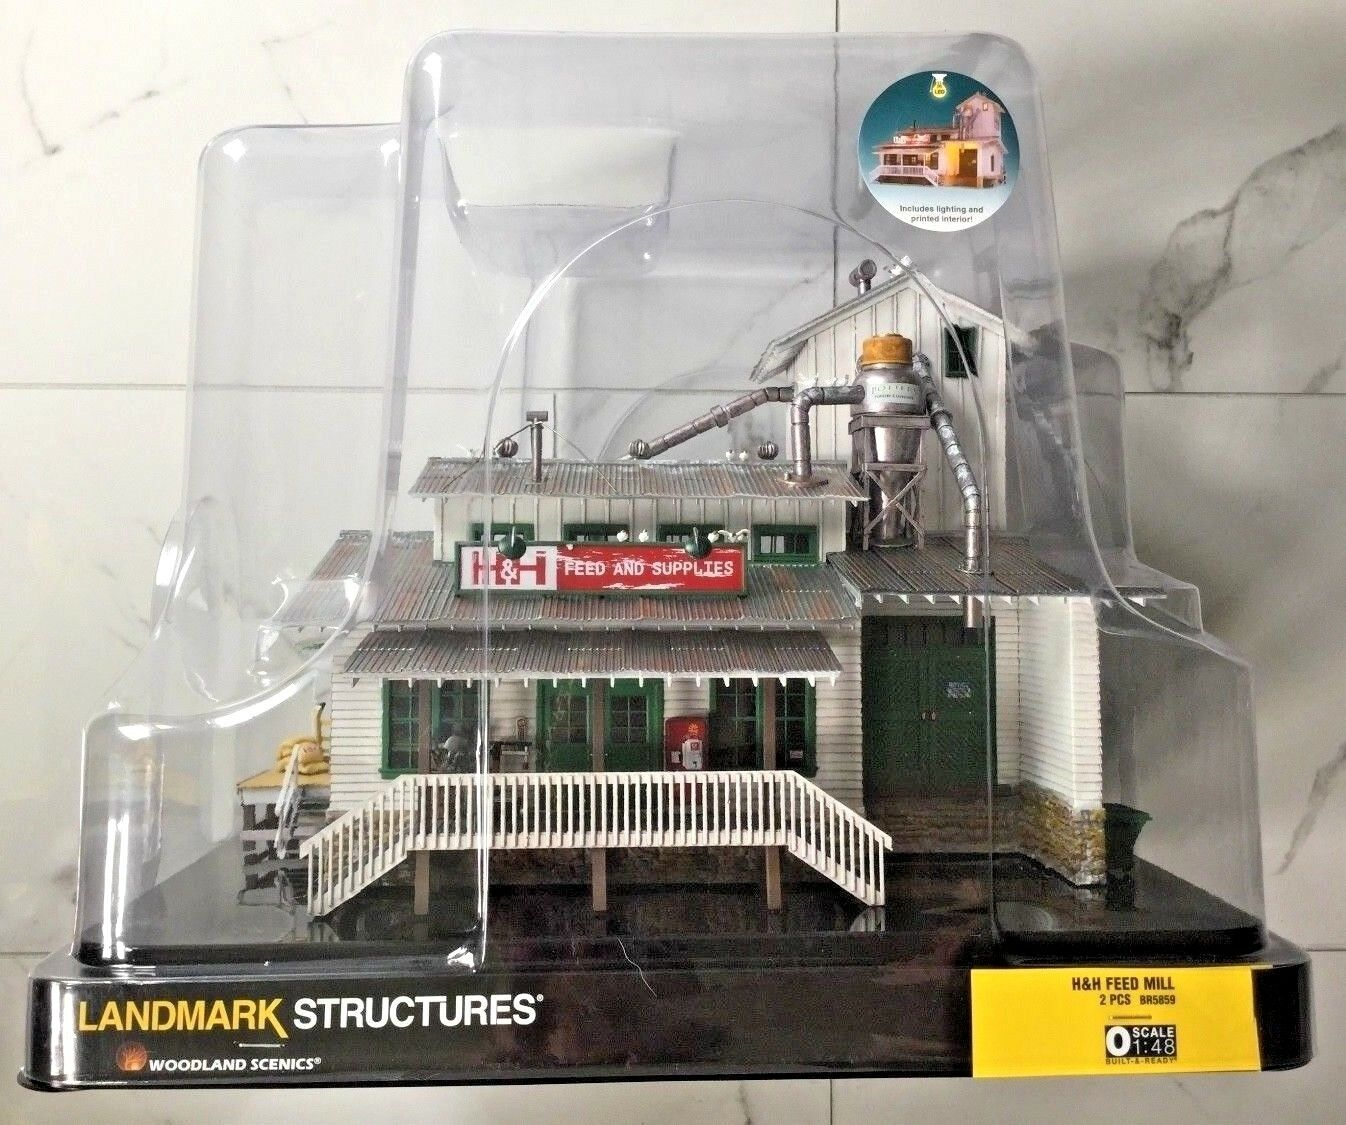 WOODLAND SCENICS 1/48 O SCALE H&H FEED MILL BUILT & READY W/ LIGHTS  BR 5859 F/S